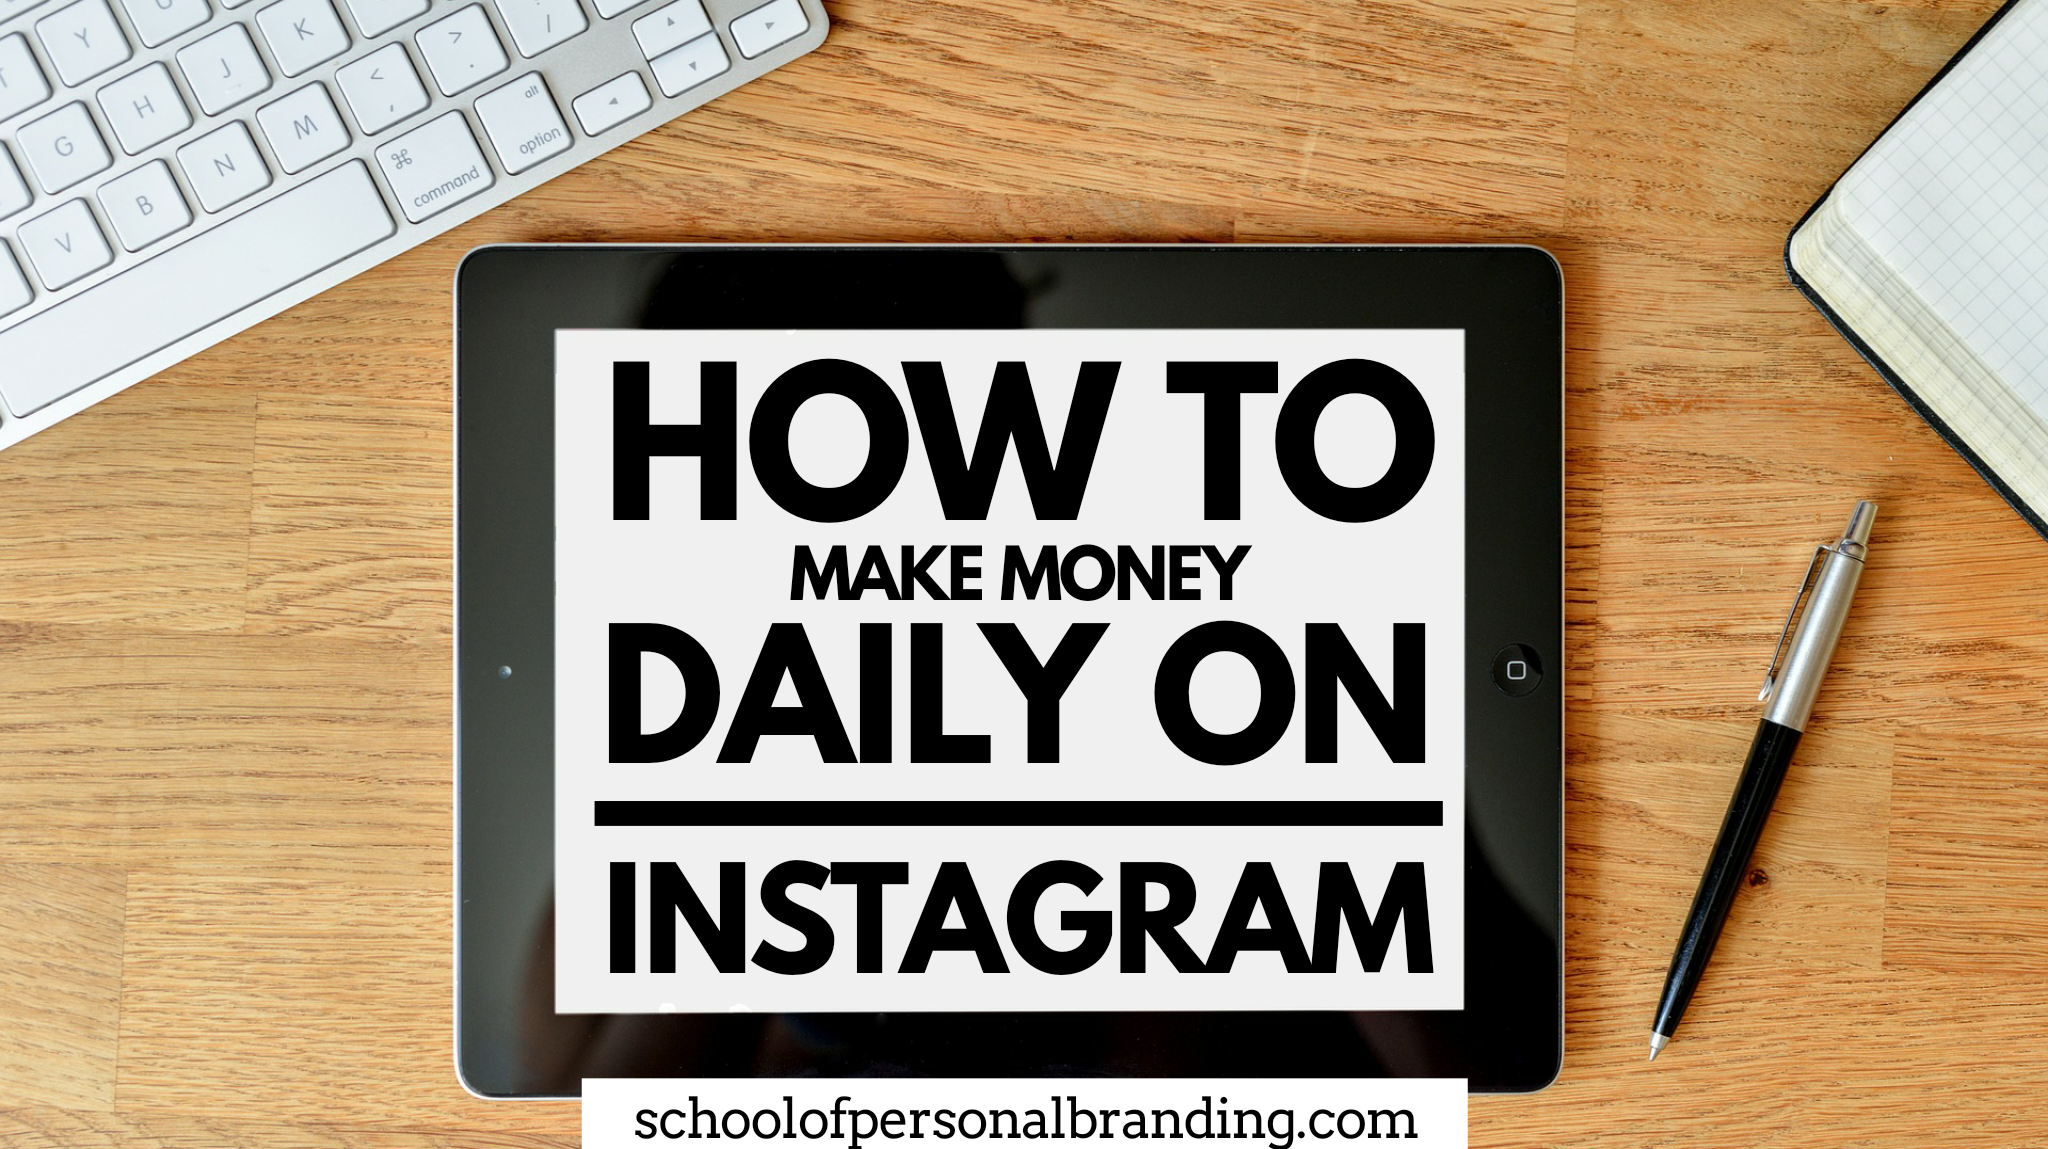 How To Make Money Daily On Instagram